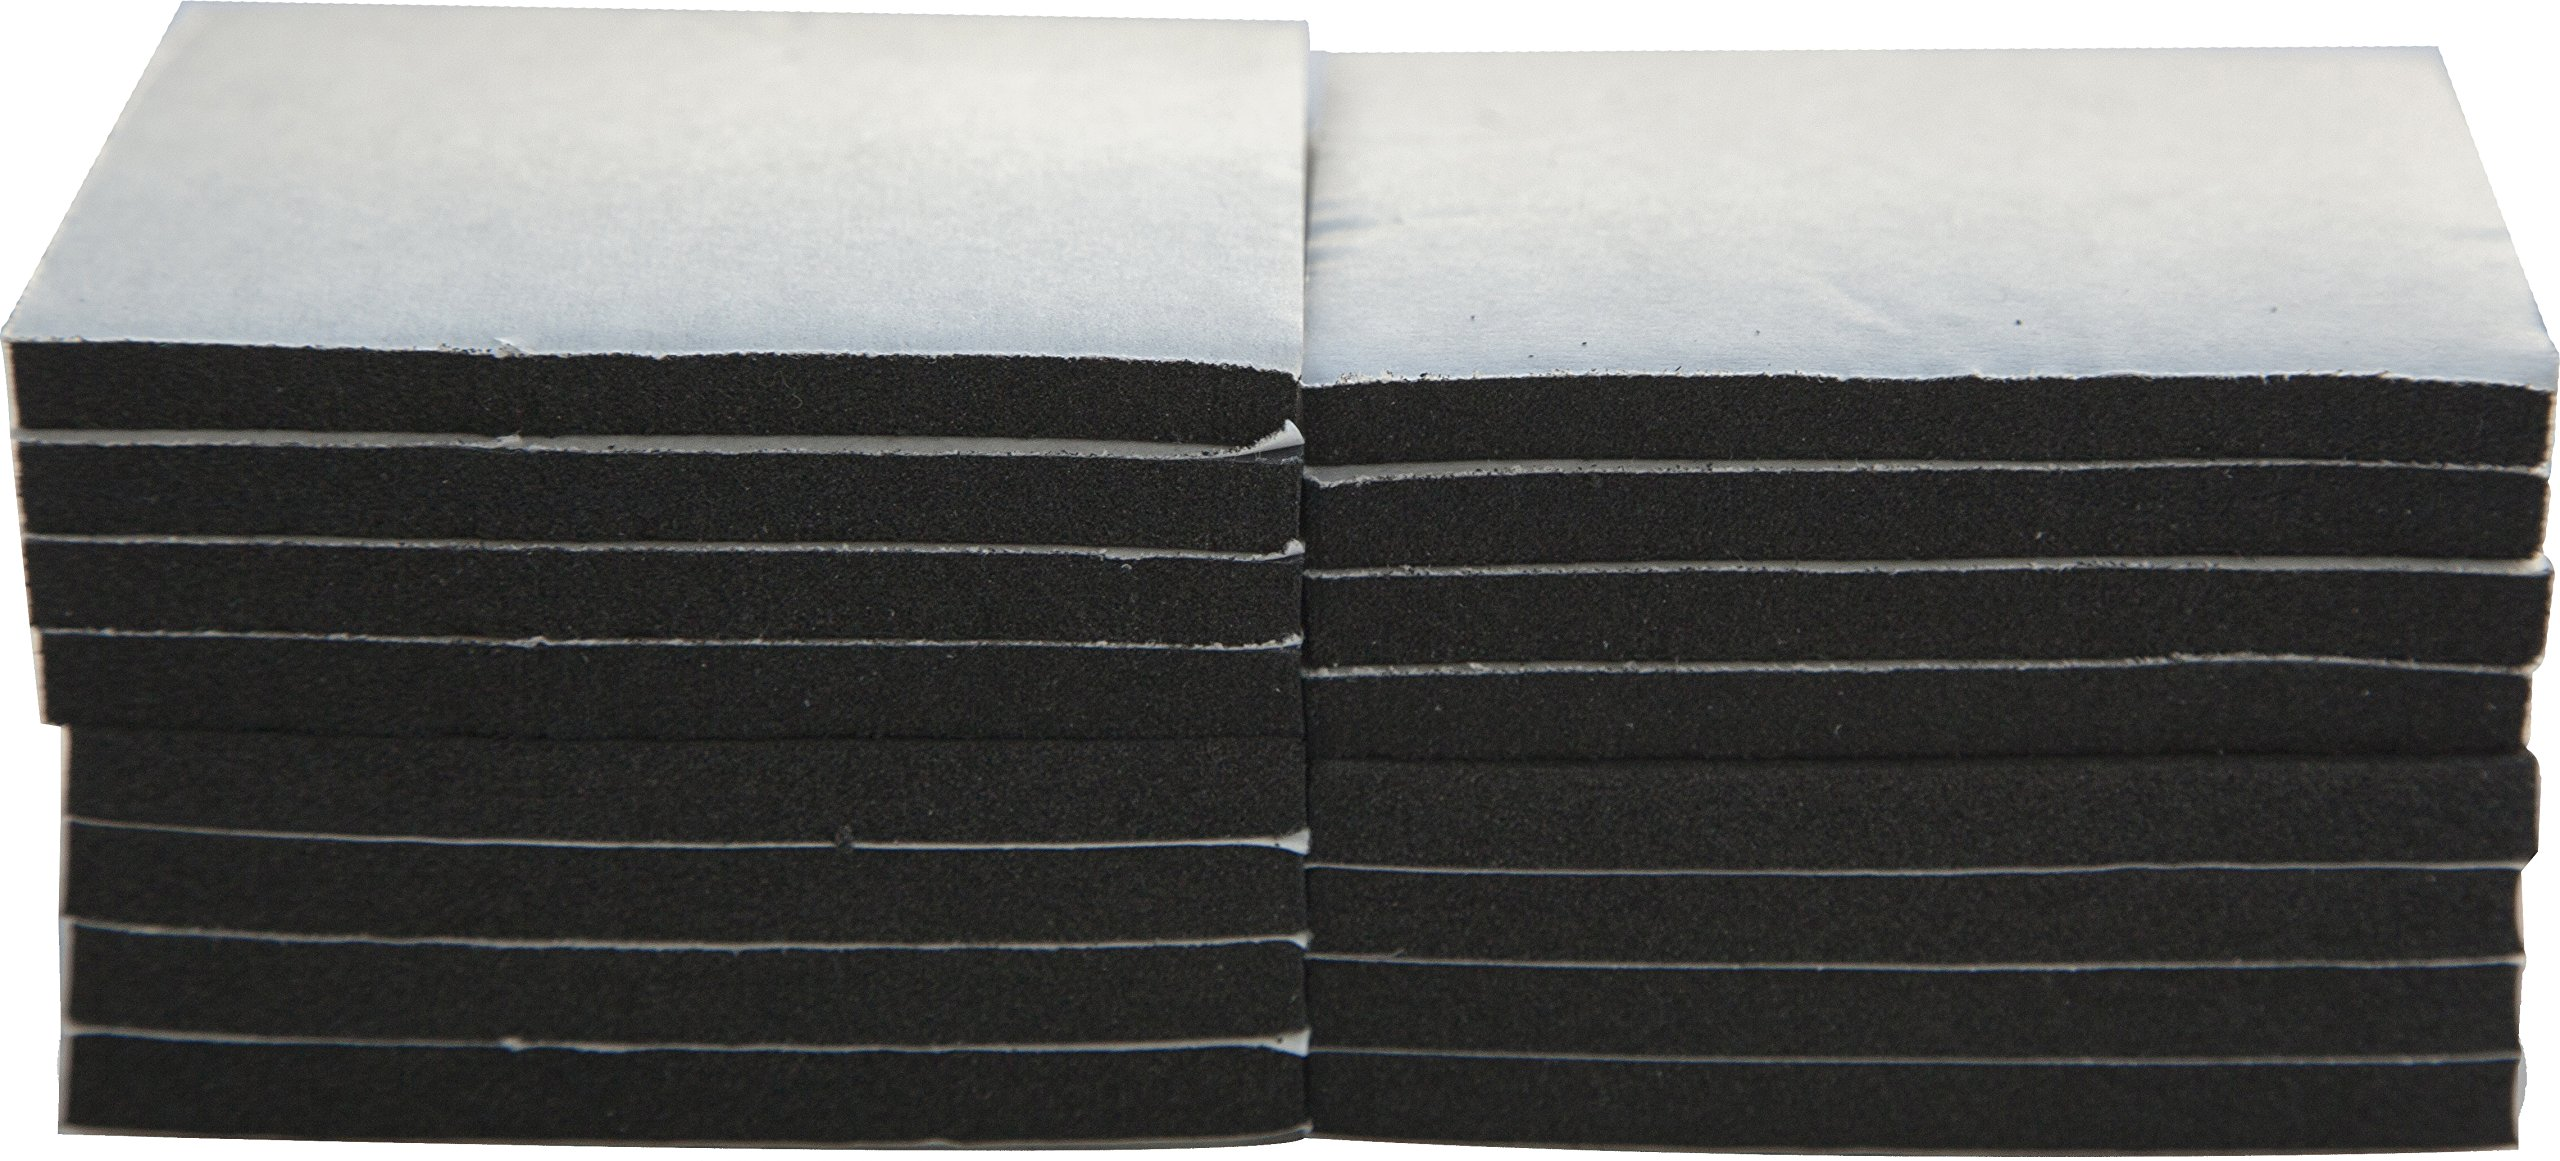 Cheap Rubber Pads Lowes Find Rubber Pads Lowes Deals On